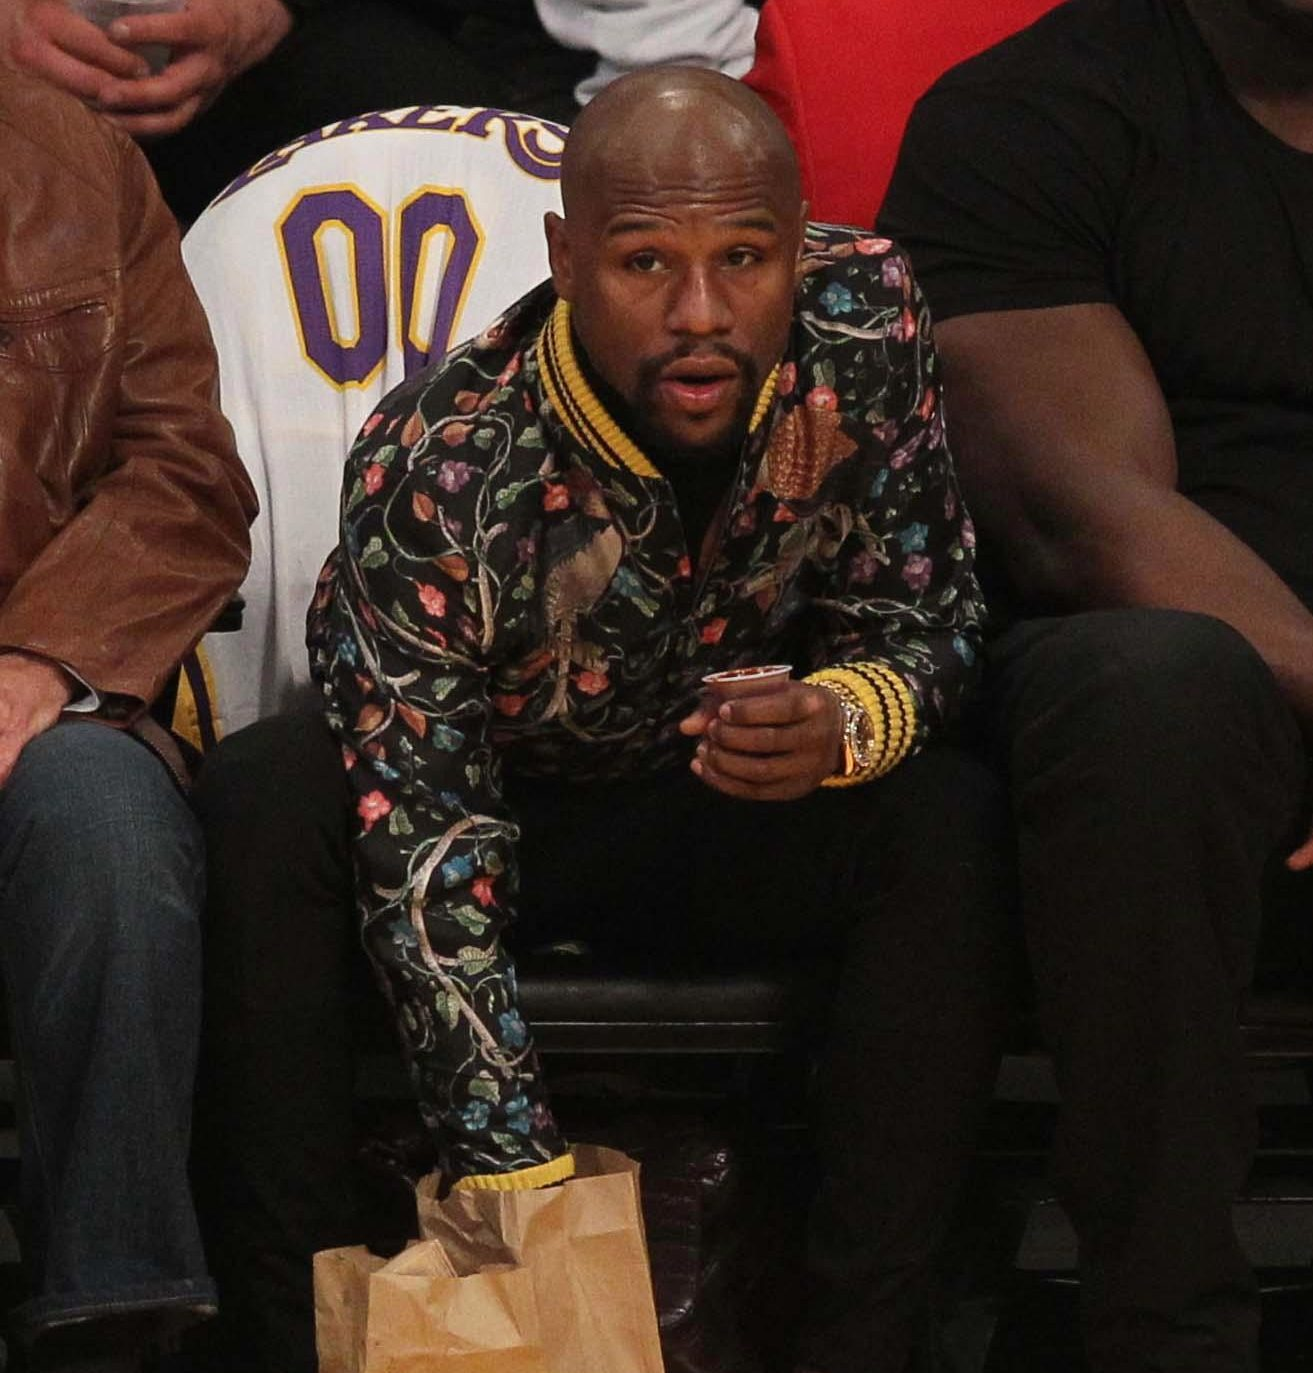 Floyd Mayweather could make his UFC debut very soon